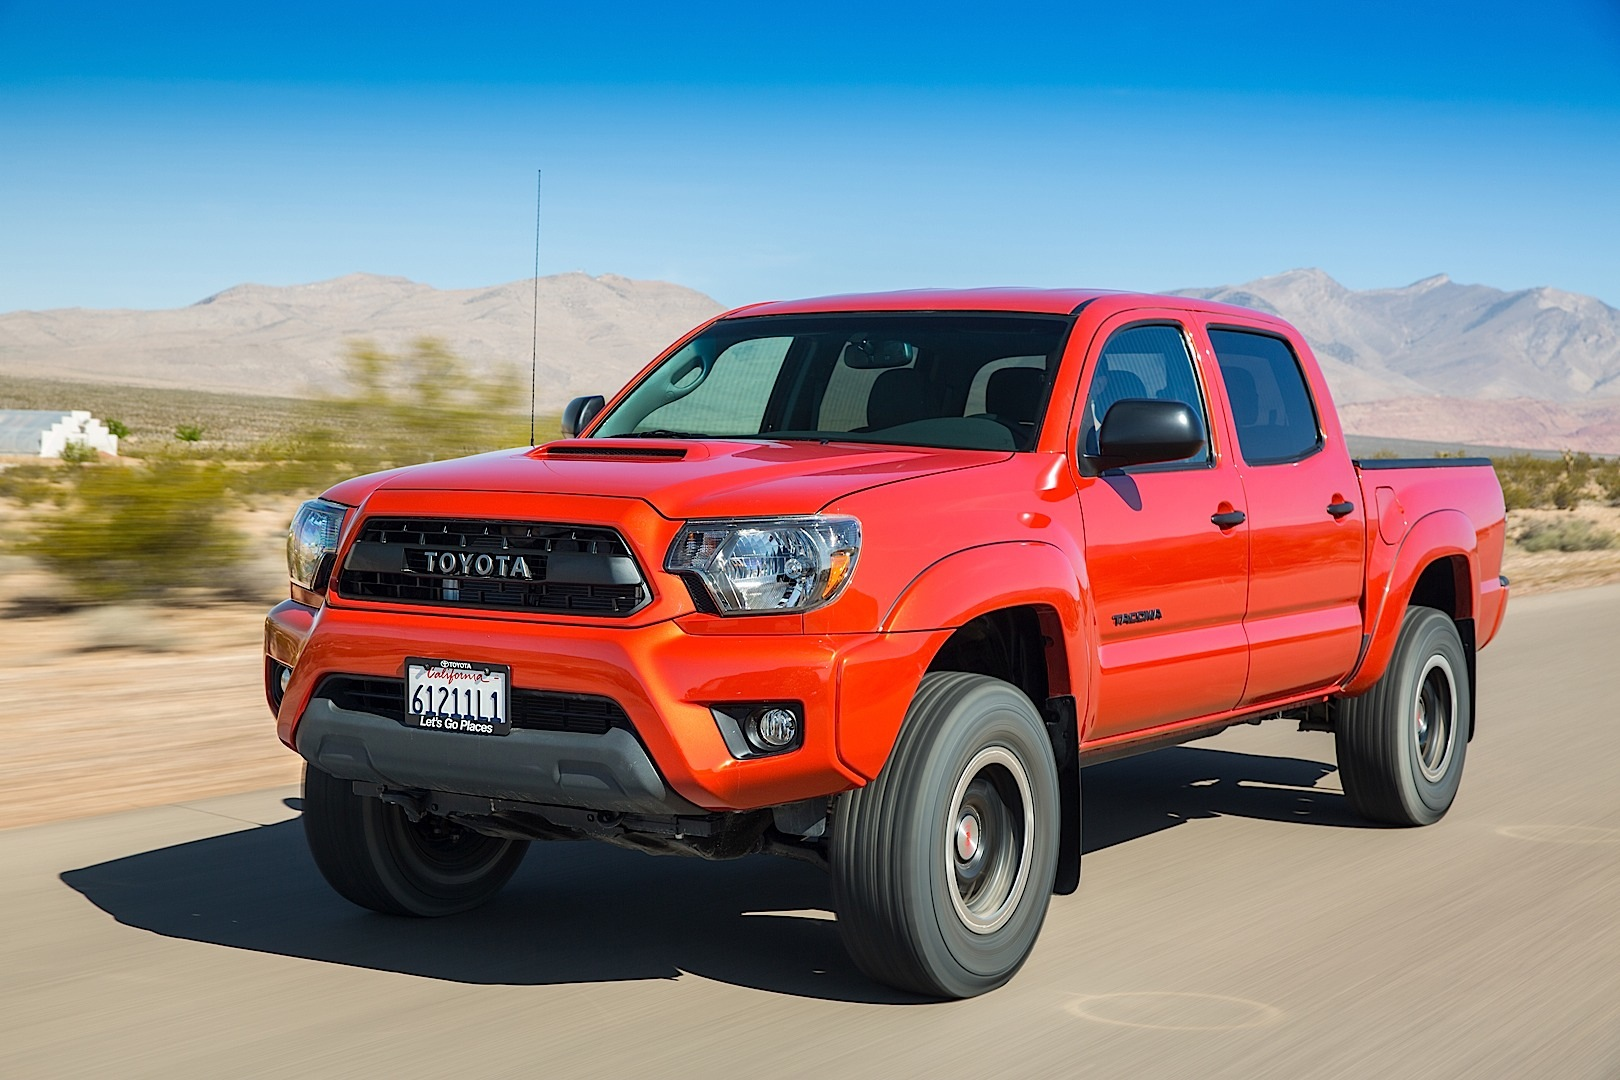 2017 Toyota Tacoma Lifted >> Toyota Tacoma and 4Runner TRD Pro Price Released - autoevolution